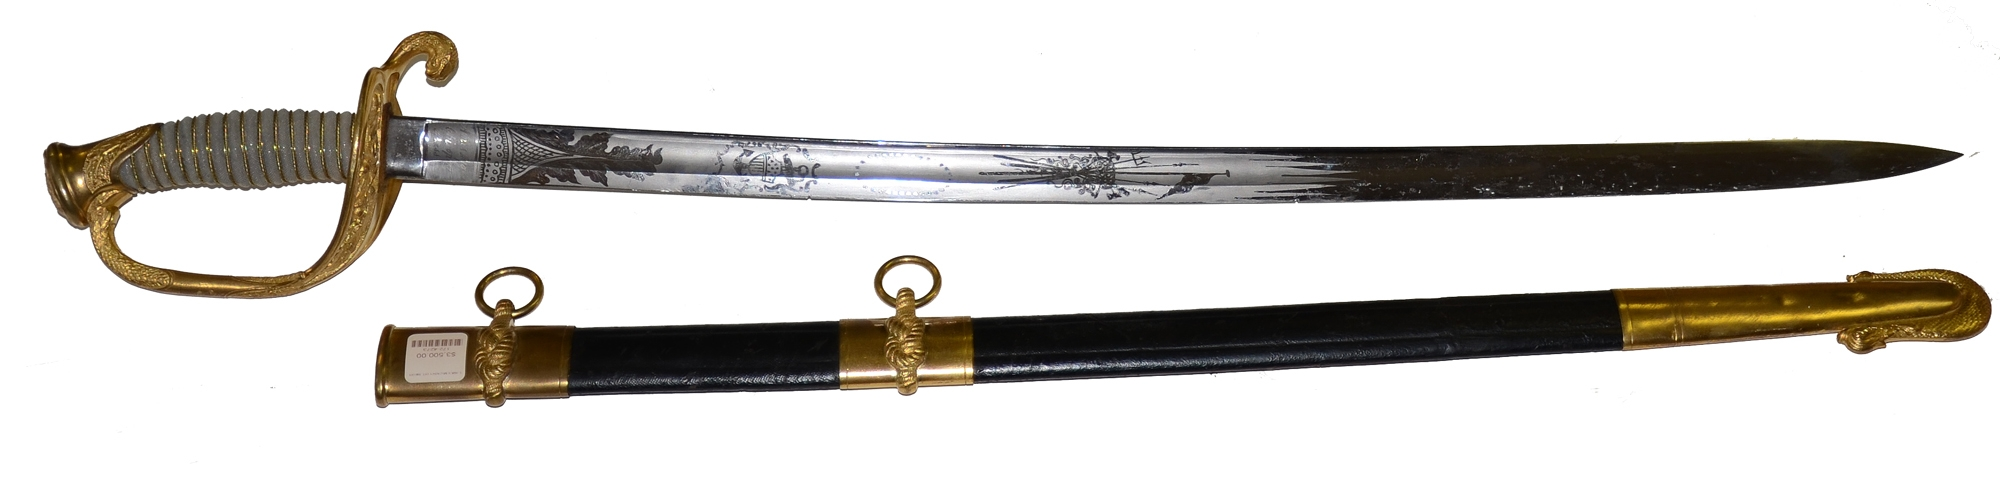 MINT AMES US NAVY MODEL 1852 OFFICER'S SWORD AND SCABBARD